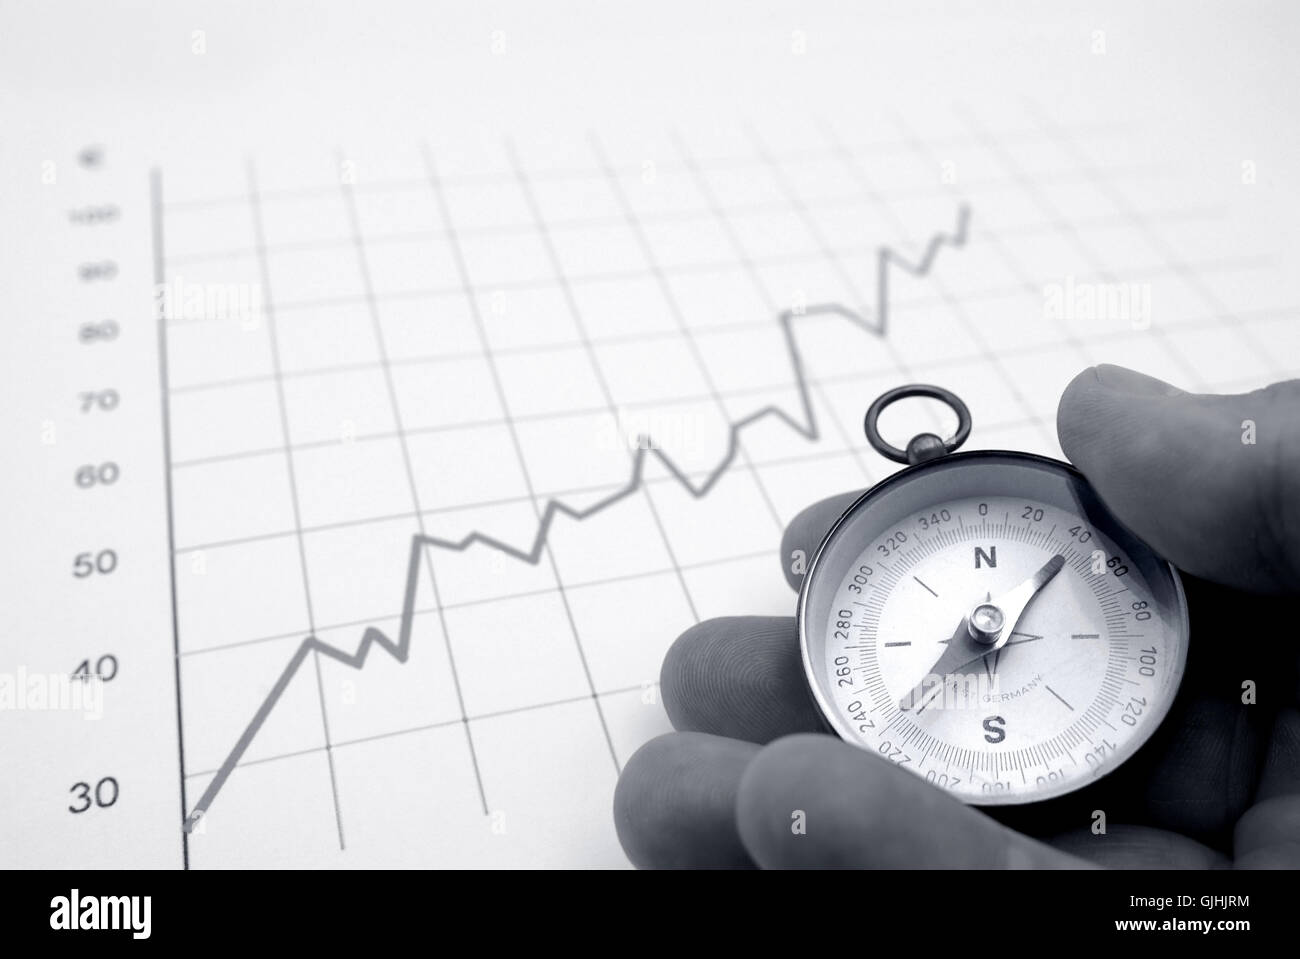 pretend course - Stock Image